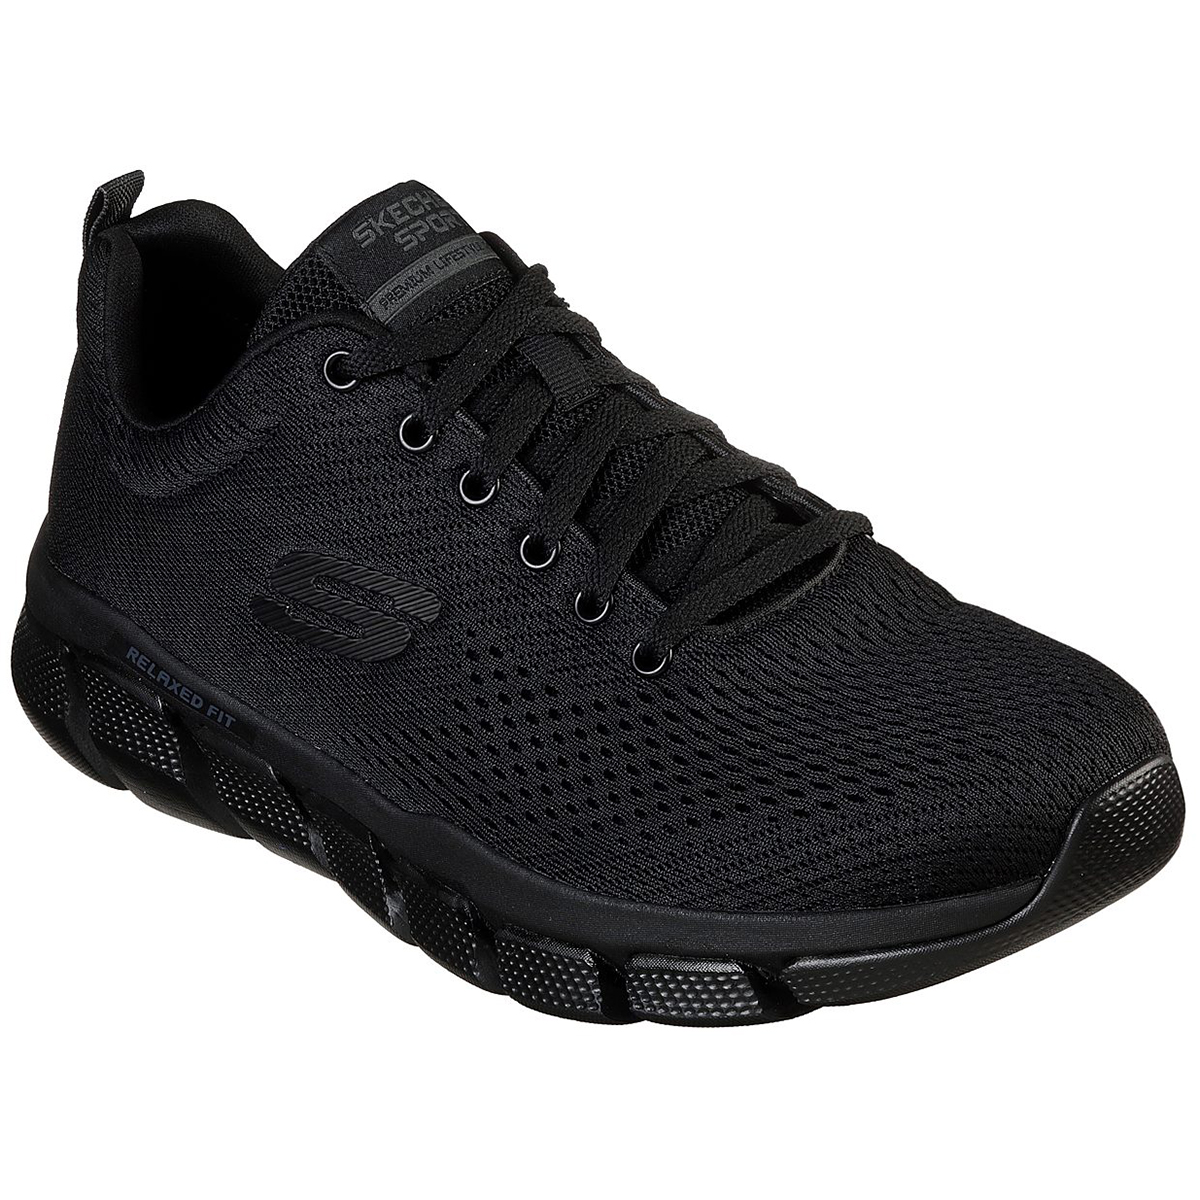 Skechers Men's Relaxed Fit Skech-Flex 3.0 Verko Lace Up Sneakers - Black, 13